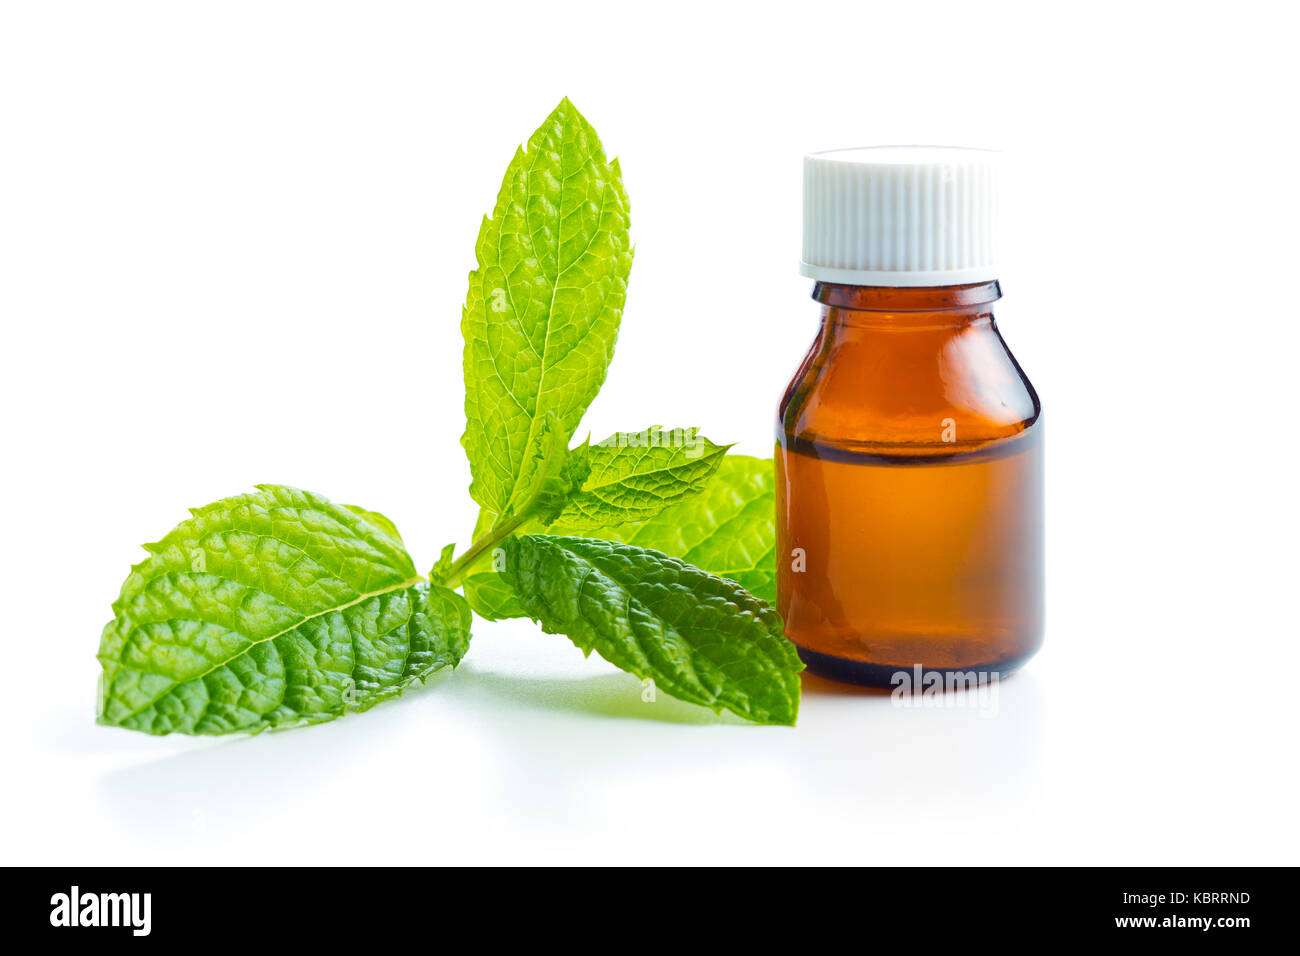 Bottle of essential mint oil isolated on white background. - Stock Image